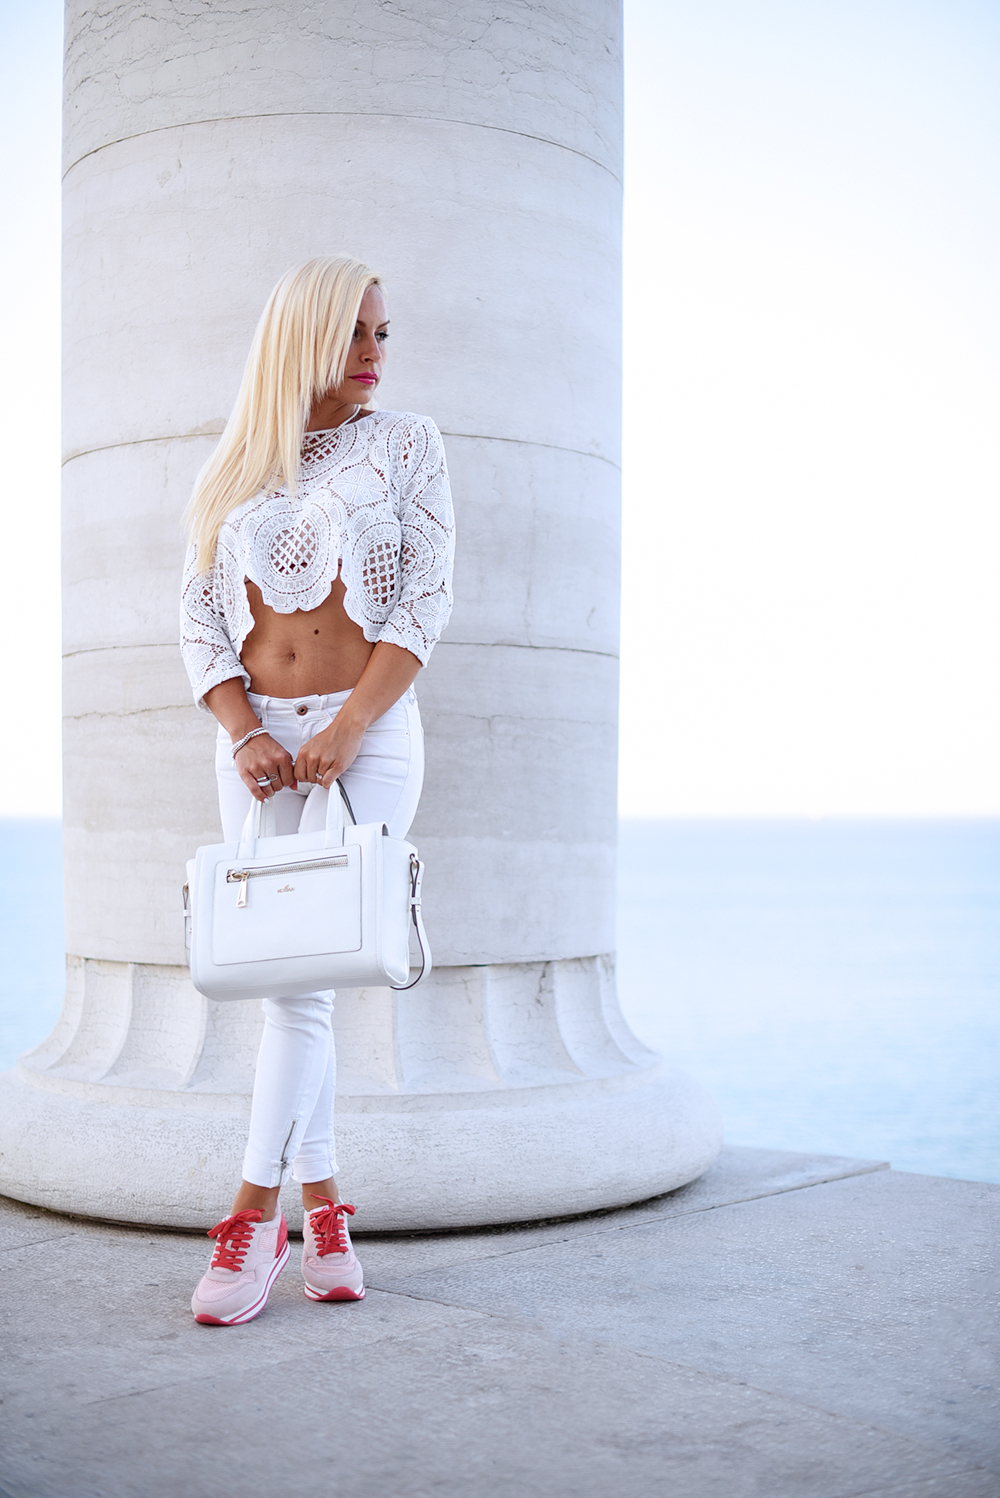 Hogan Brand sneaker H222, Hogan white bag, Hogan collezione estate 2015, saldi Hogan, white total look, come indossare il bianco – outfit summer 2015 fashion blogger It-Girl by Eleonora Petrella